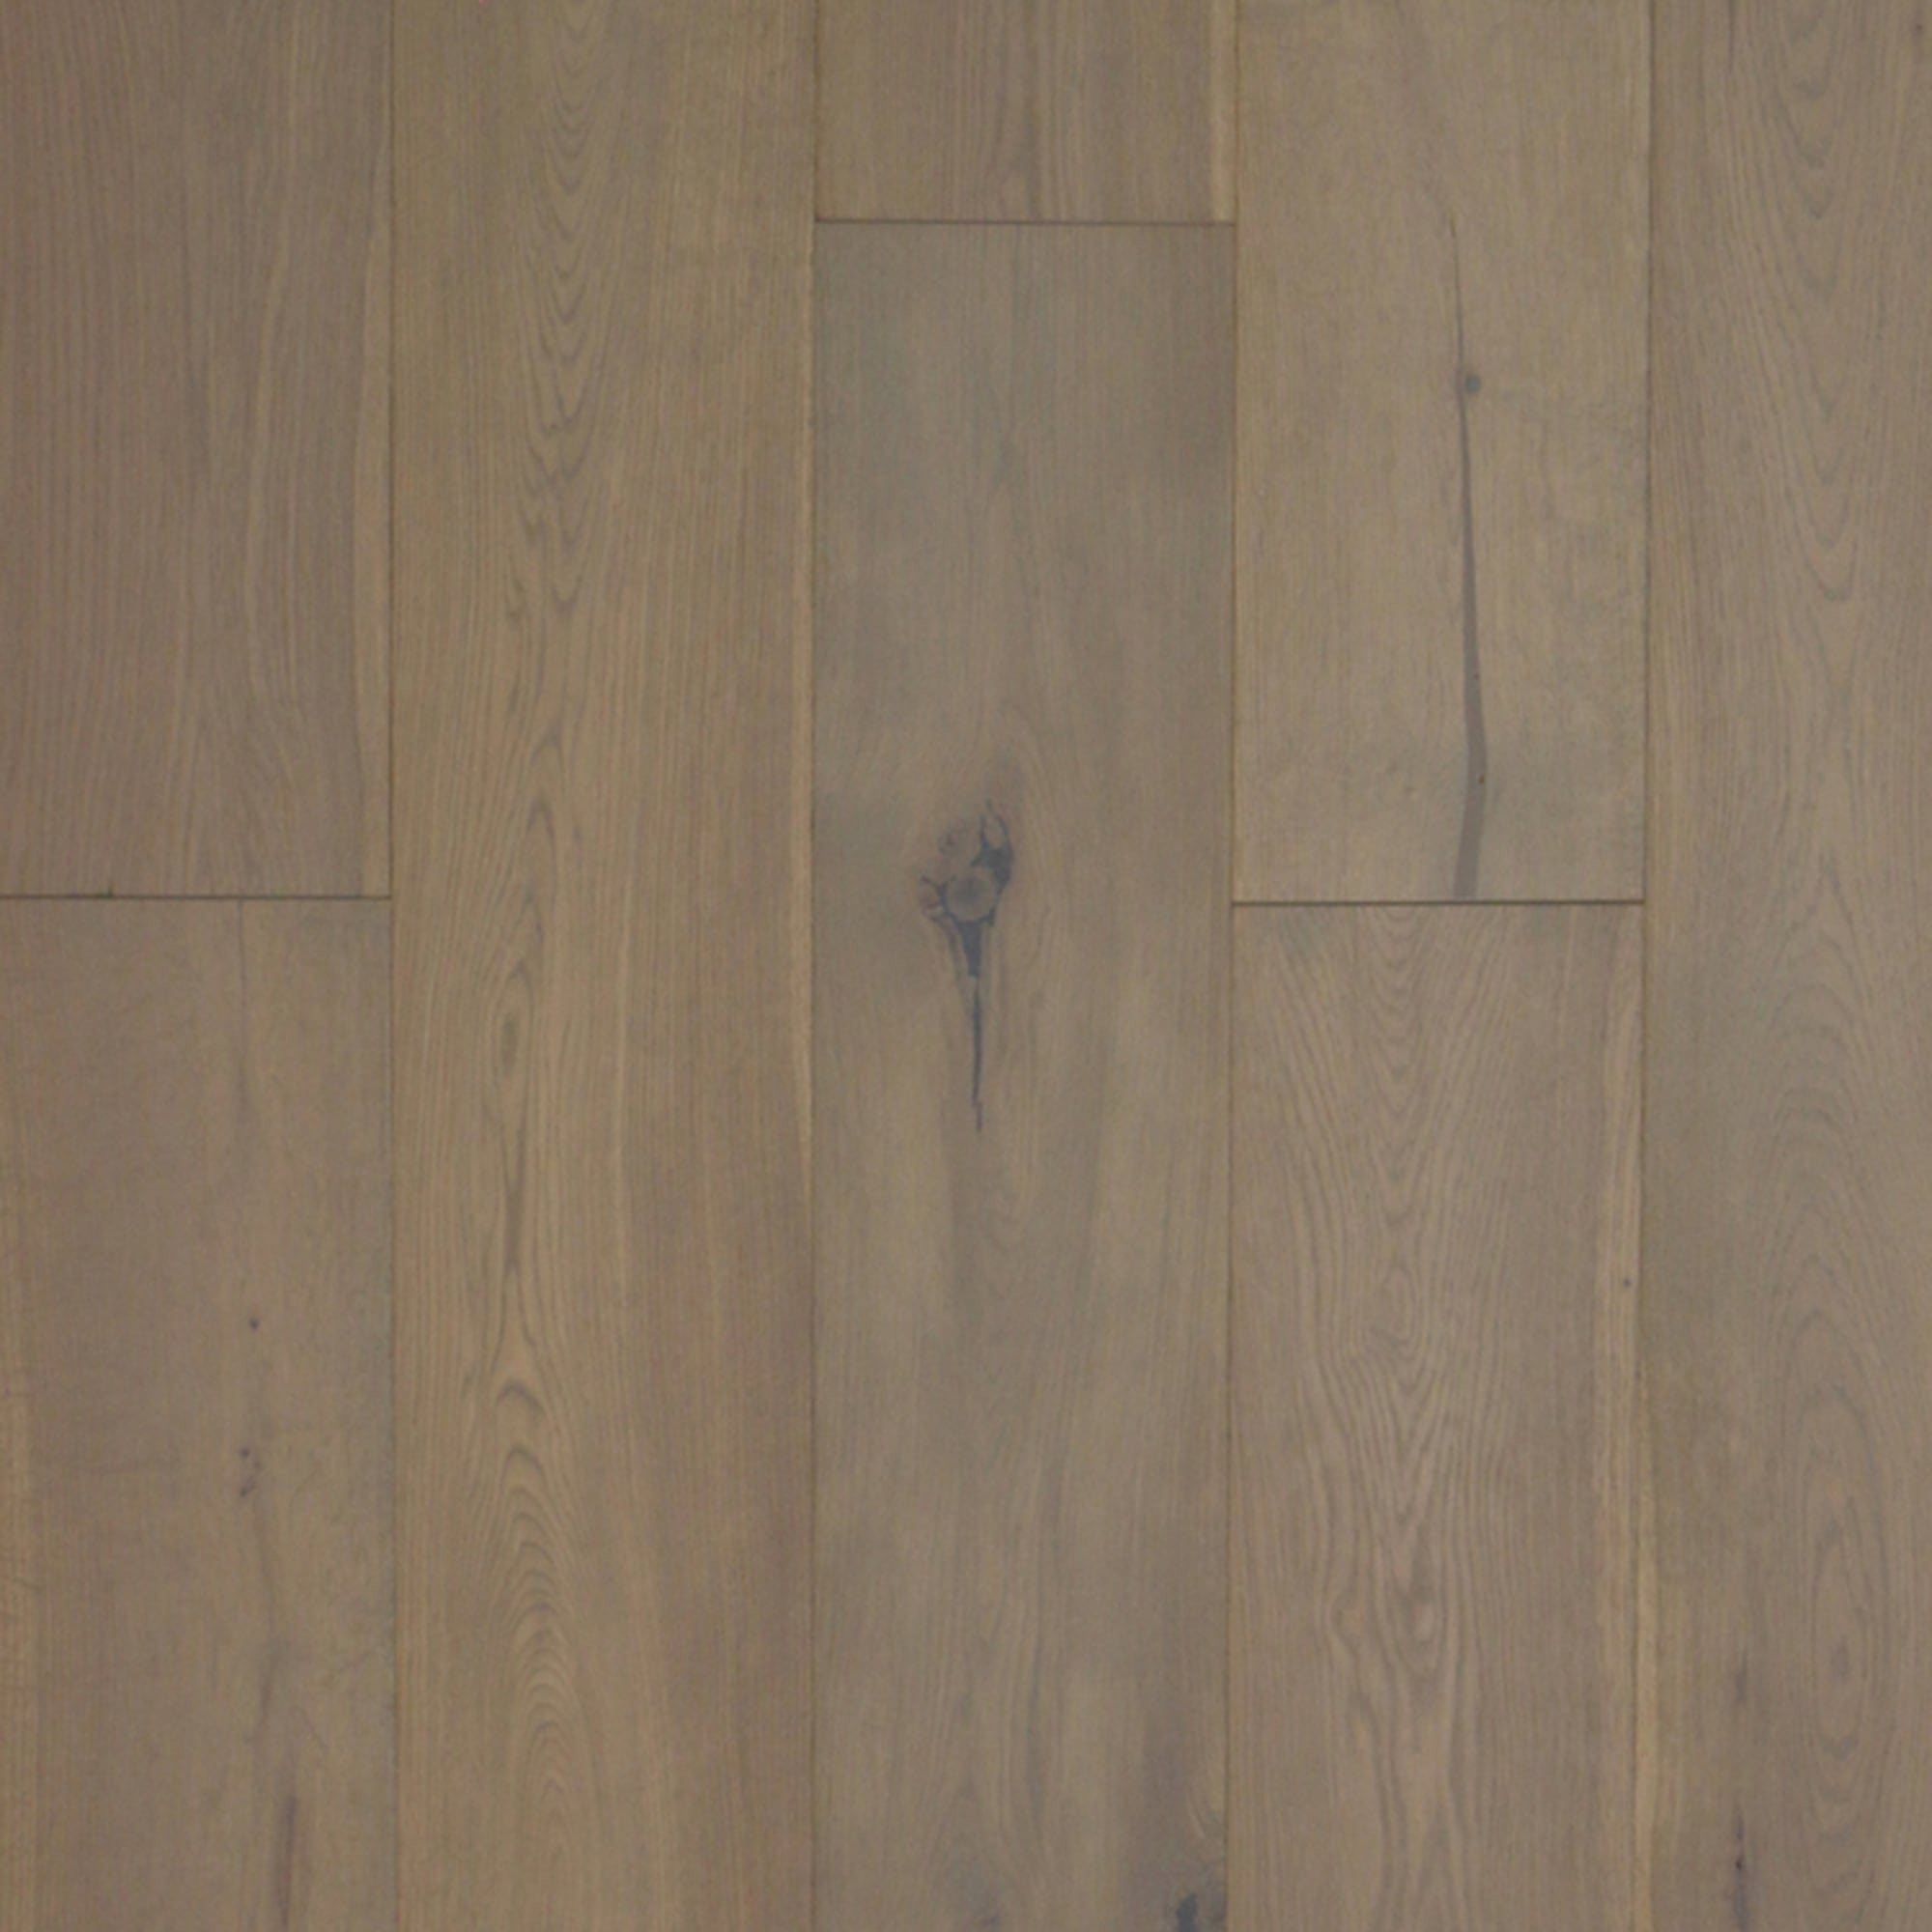 Wood flooring 14x189mm platinum grey hppc engineered oak for Engineered oak flooring